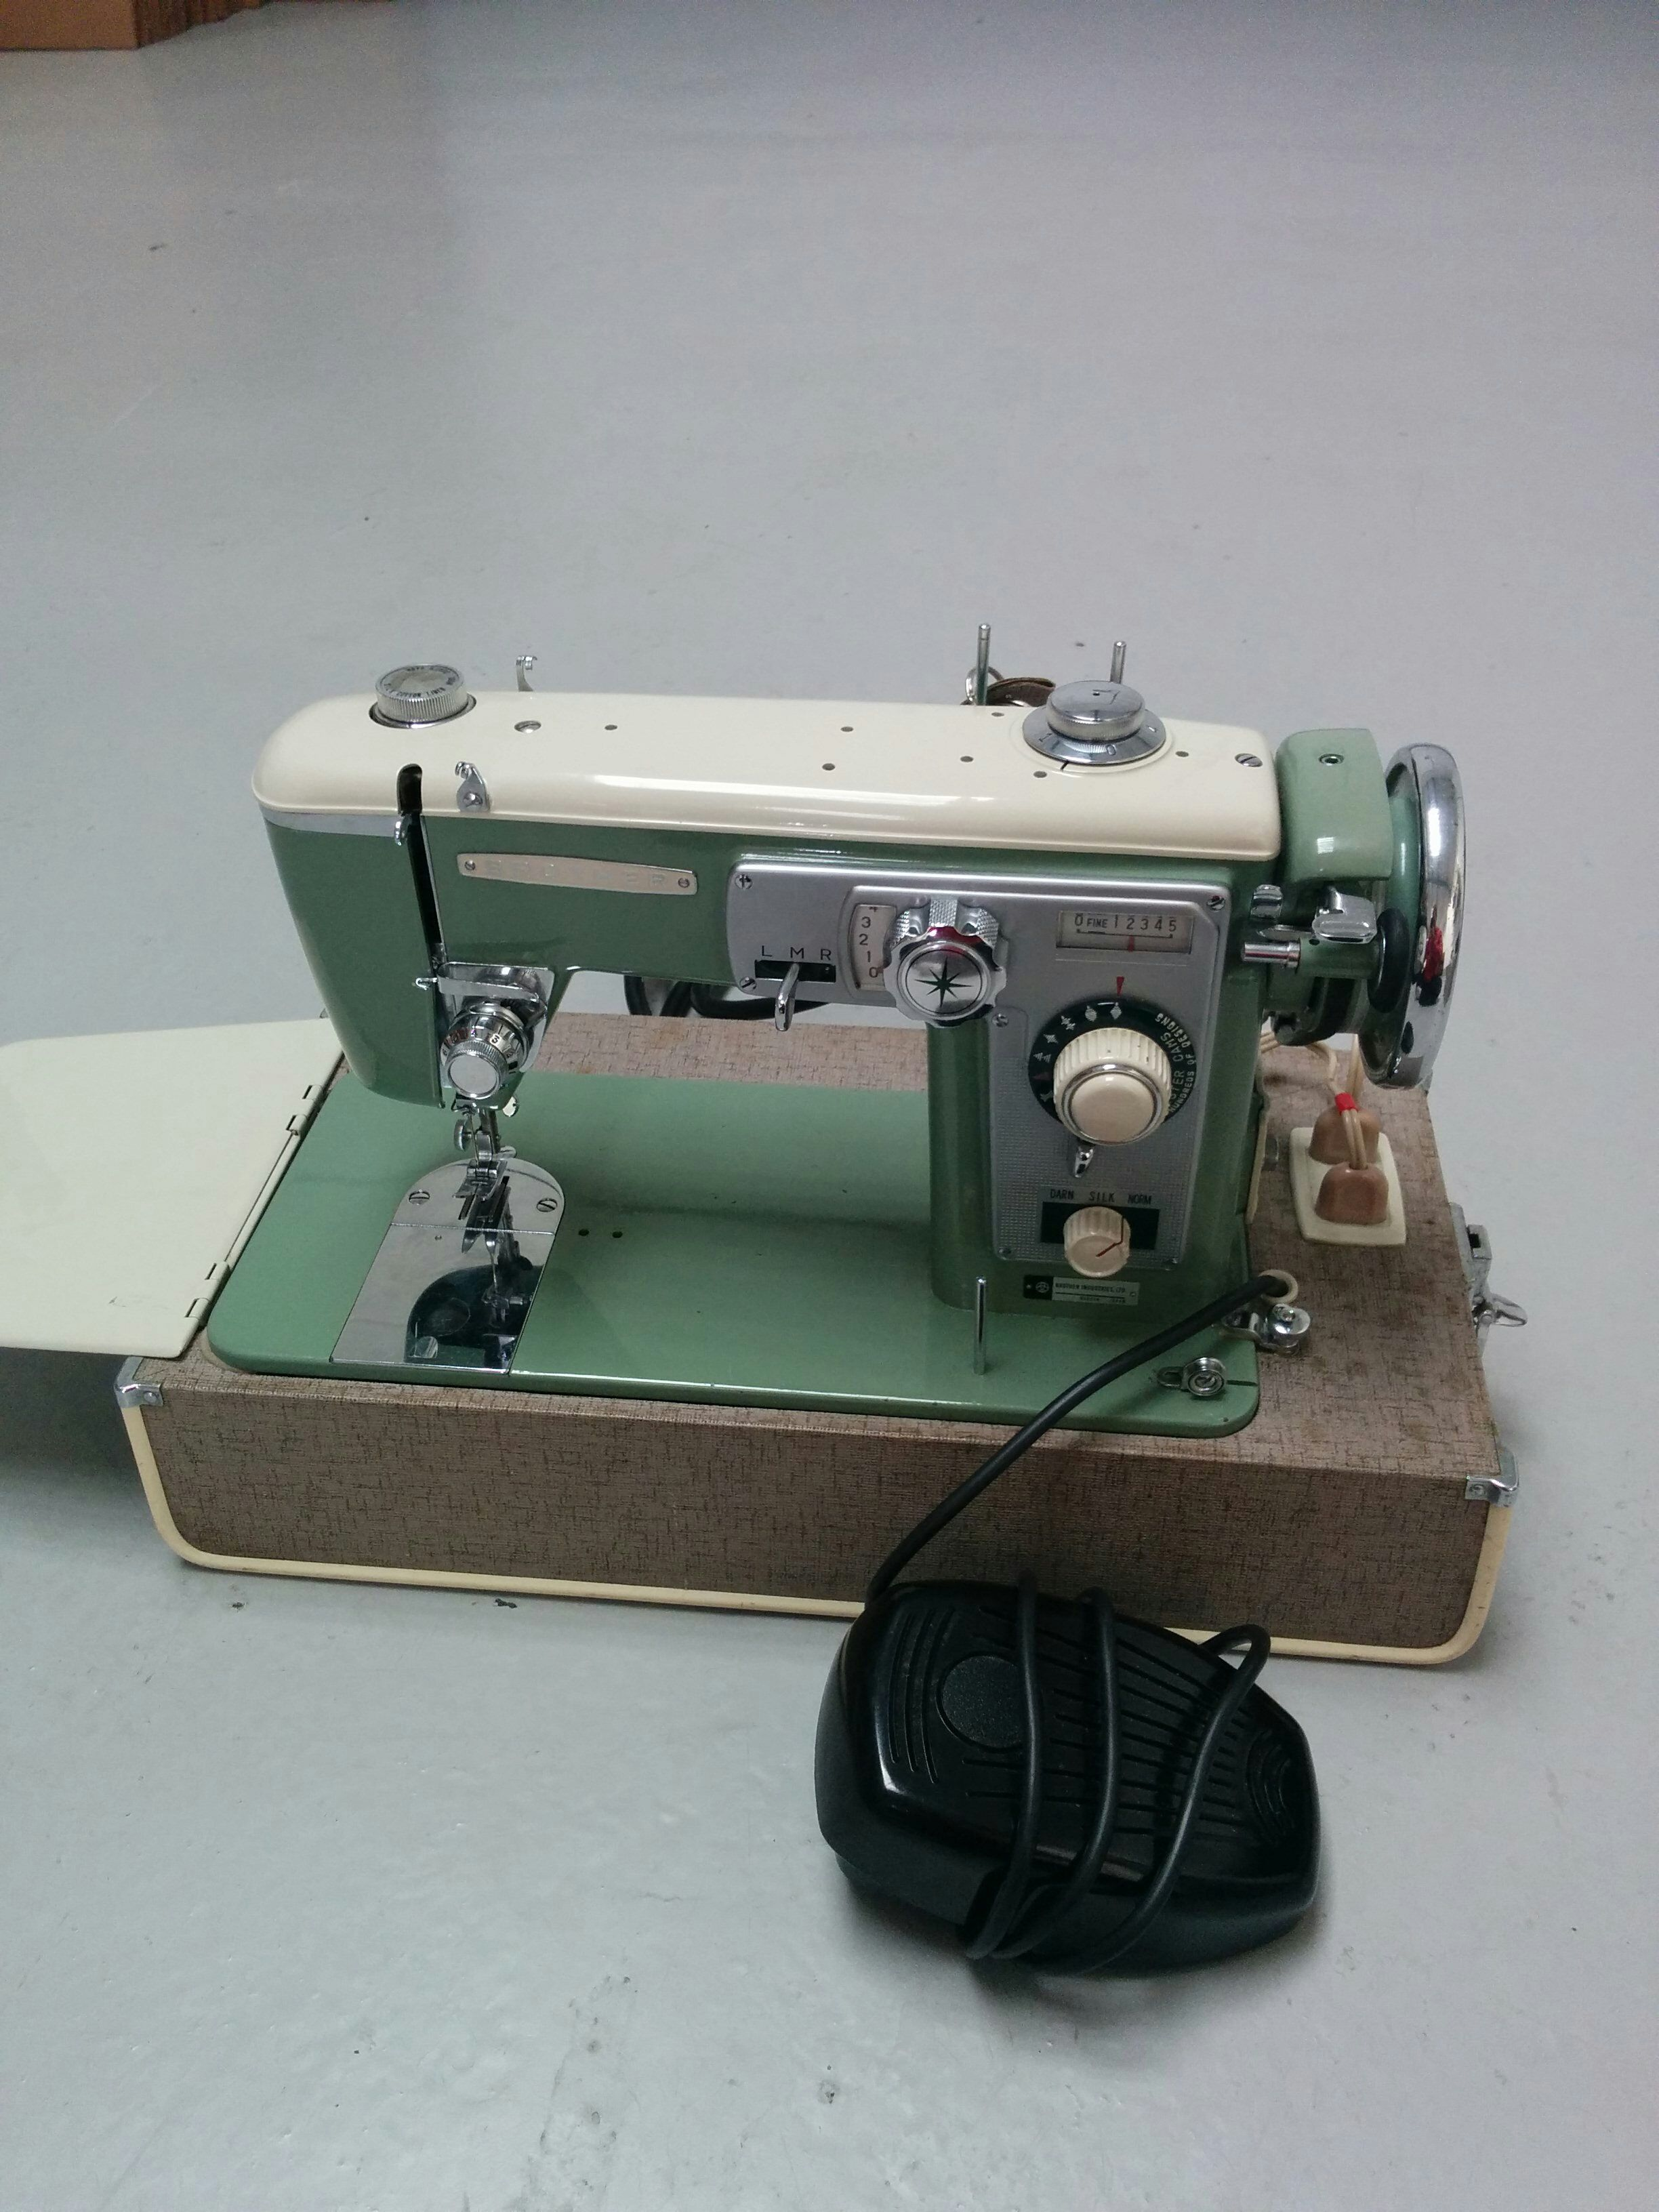 Brother 210 1950s 1960s Bz712984 Vintage Sewing Machines Antique Sewing Machines Sewing Machine